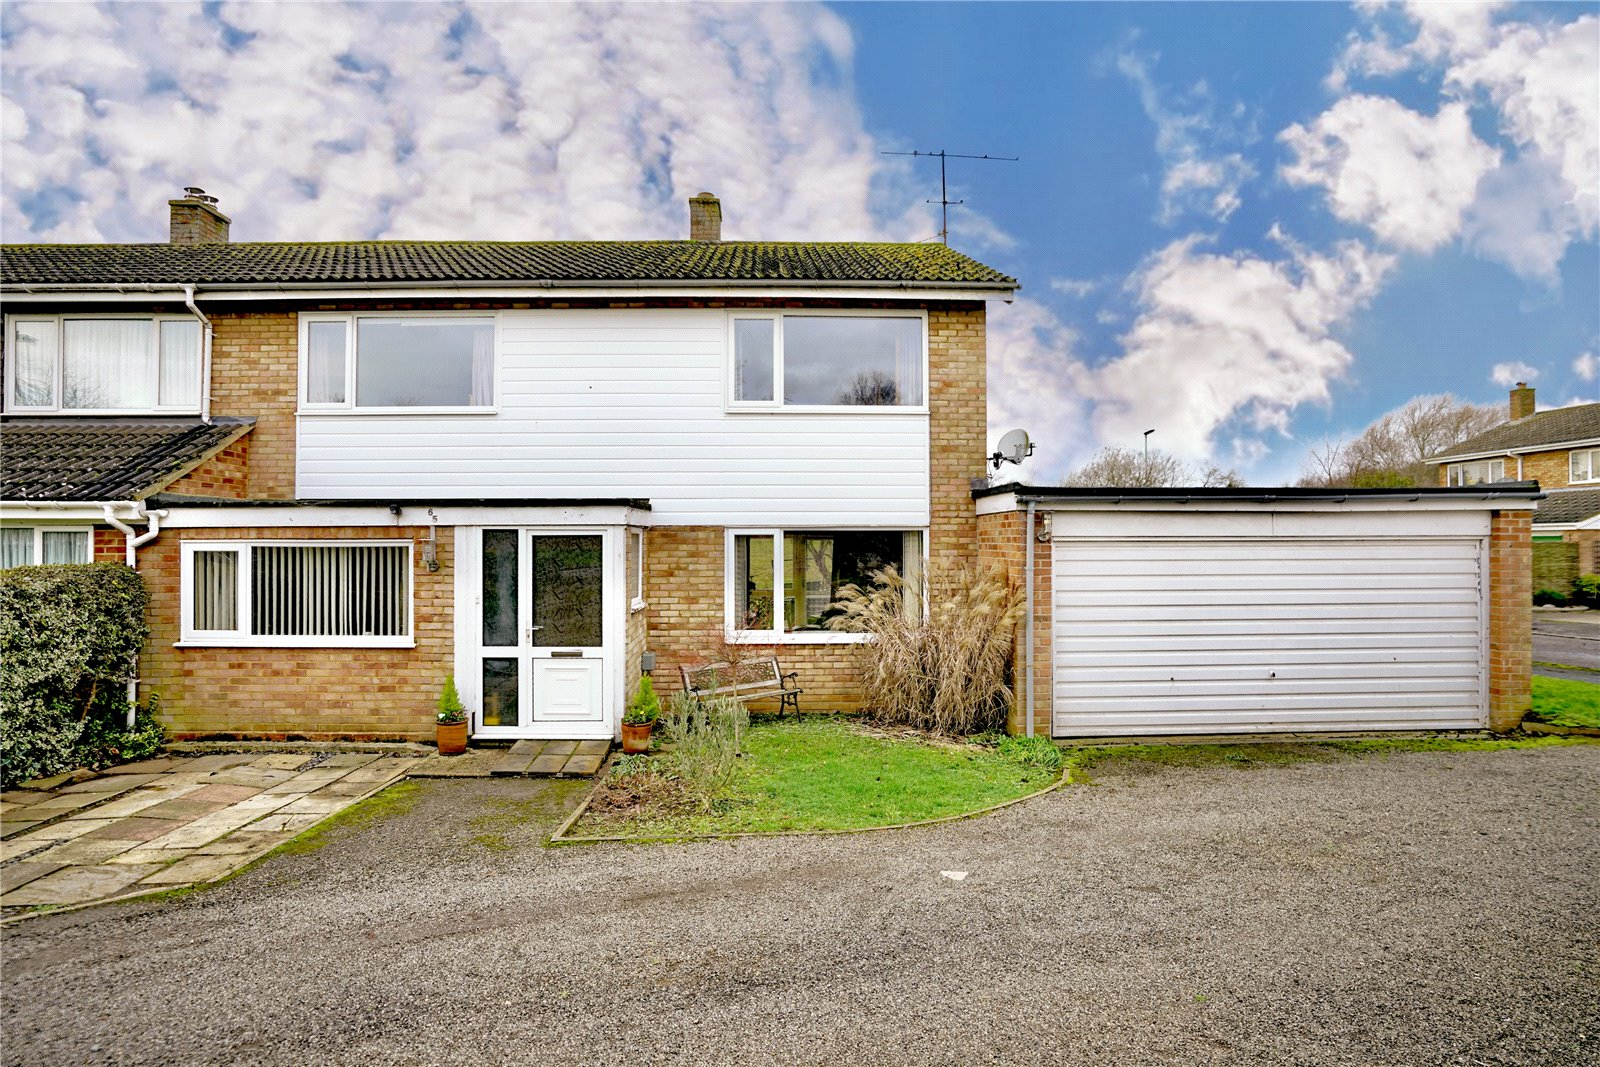 3 bed house for sale in Green Acres, Gamlingay  - Property Image 2